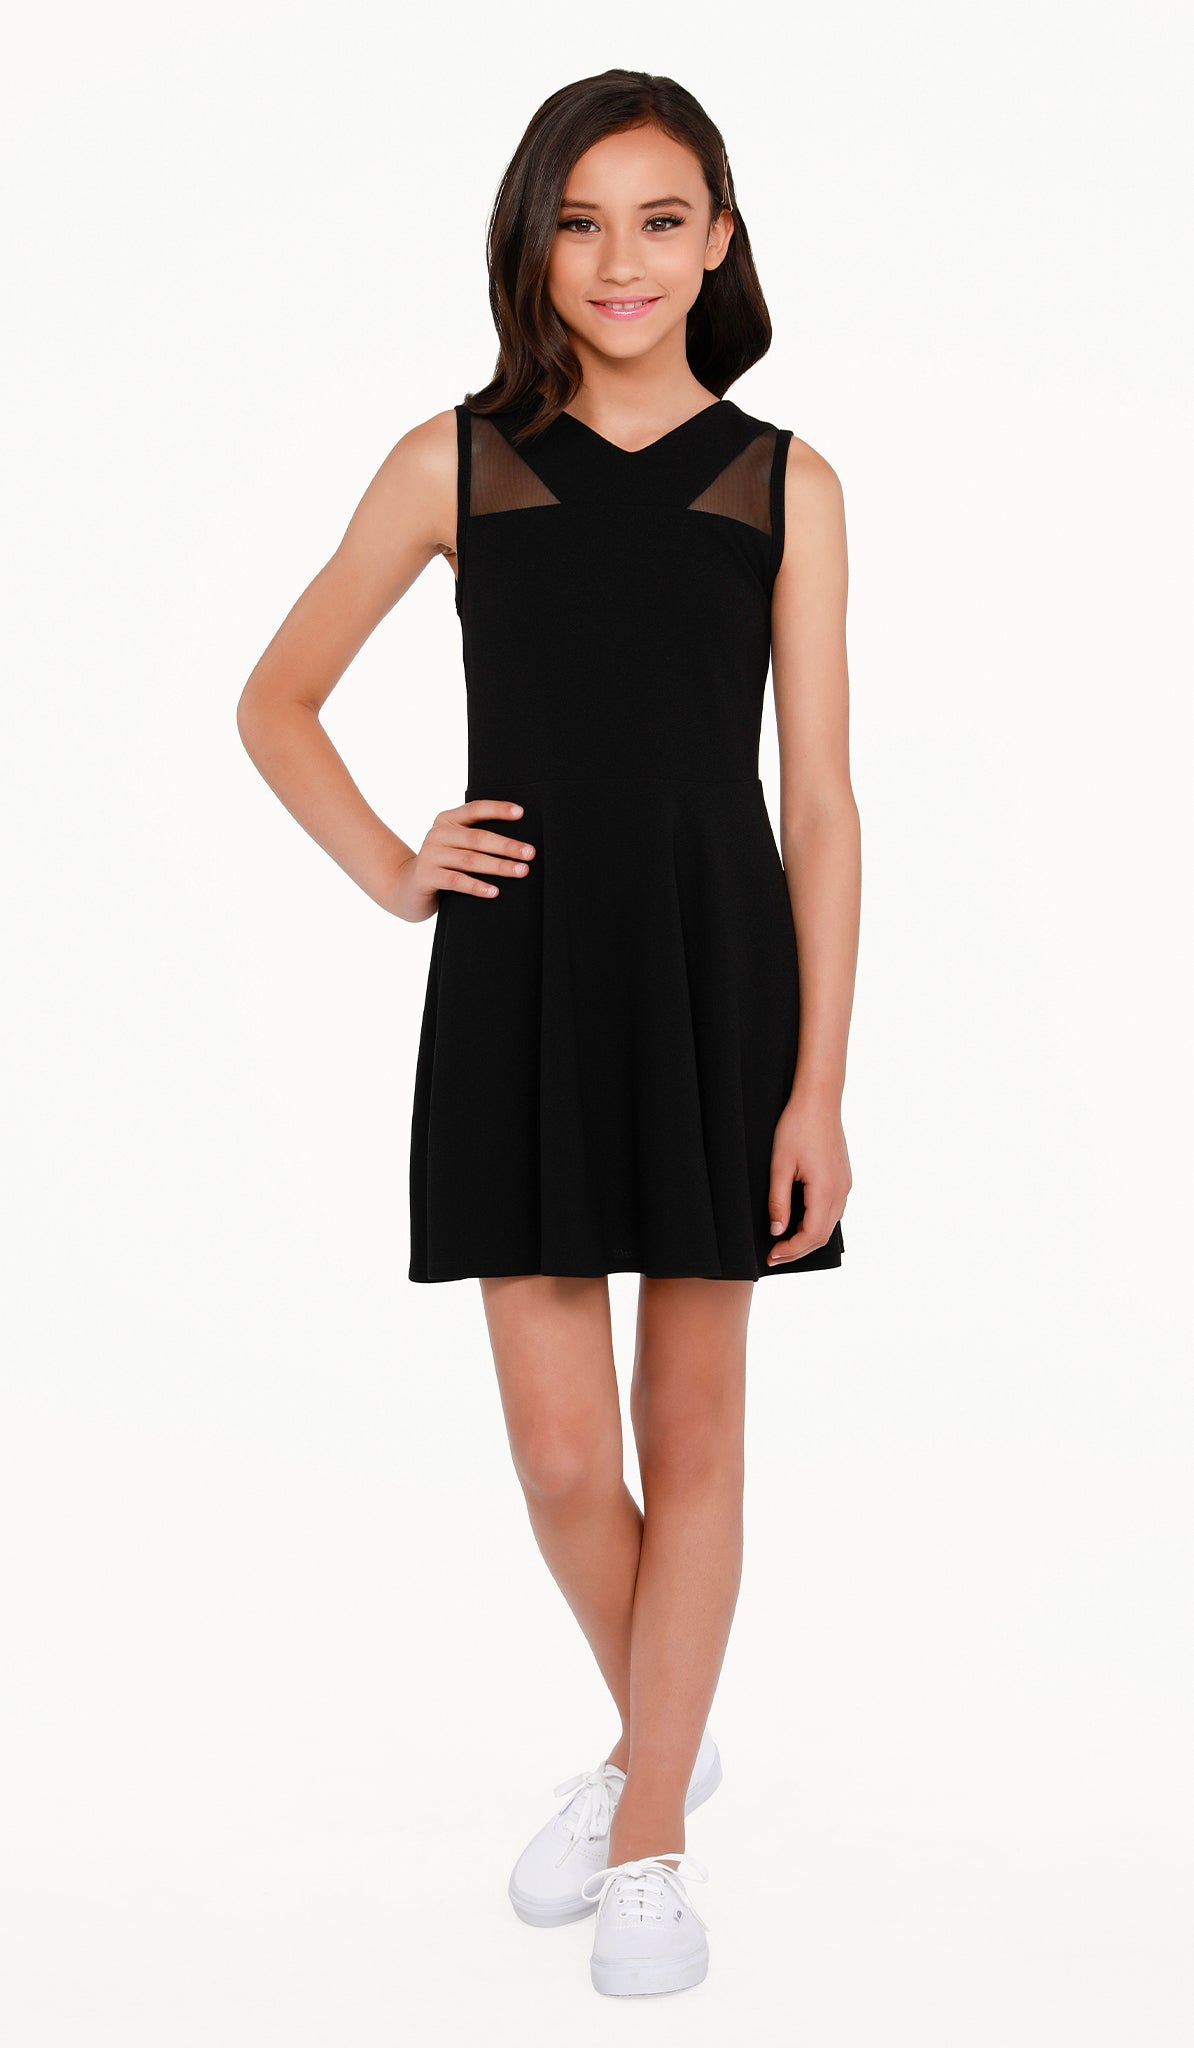 THE SHANNON DRESS - Sallymiller.com - [variant title] - | Event & Party Dresses for Tween Girls & Juniors | Weddings Dresses, Bat Mitzvah Dresses, Sweet Sixteen Dresses, Graduation Dresses, Birthday Party Dresses, Bar Mitzvah Dresses, Cotillion Dresses